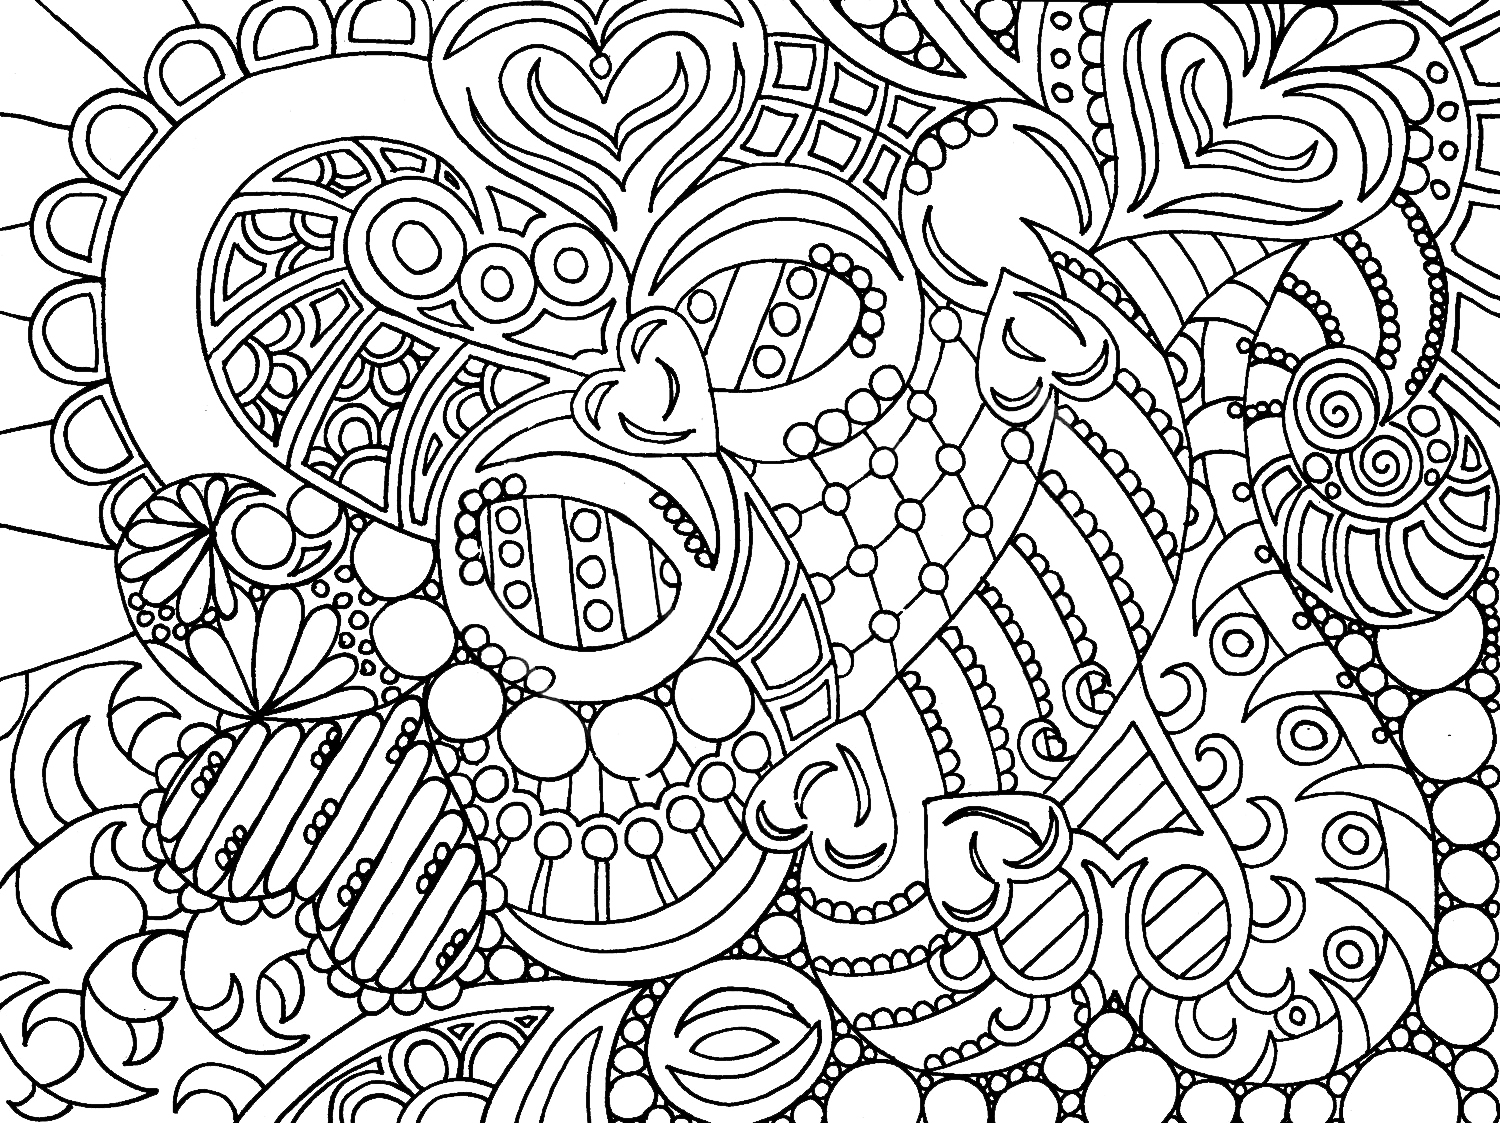 Free coloring pages for adults only coloring pages for Adult color pages